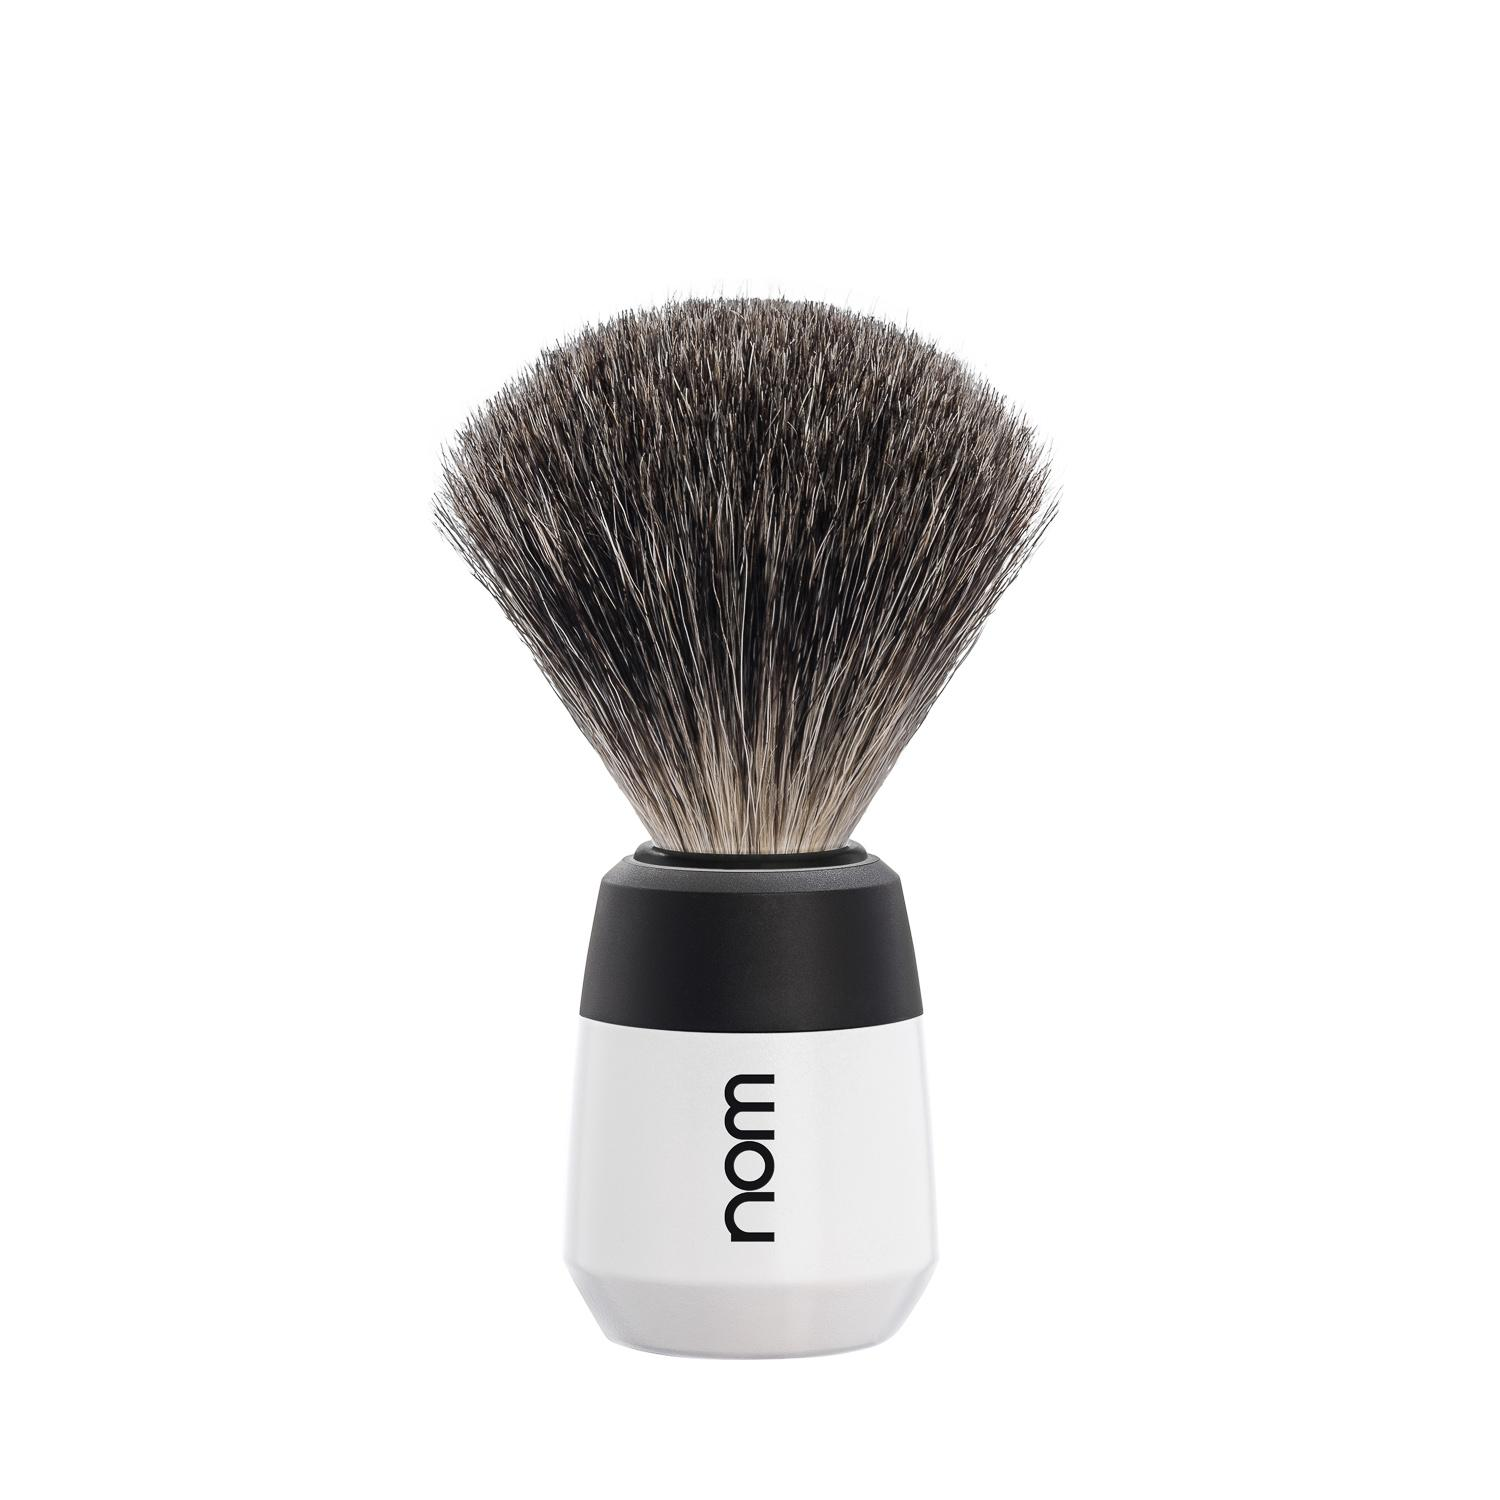 nom MAX, White, Badger Shaving Brush